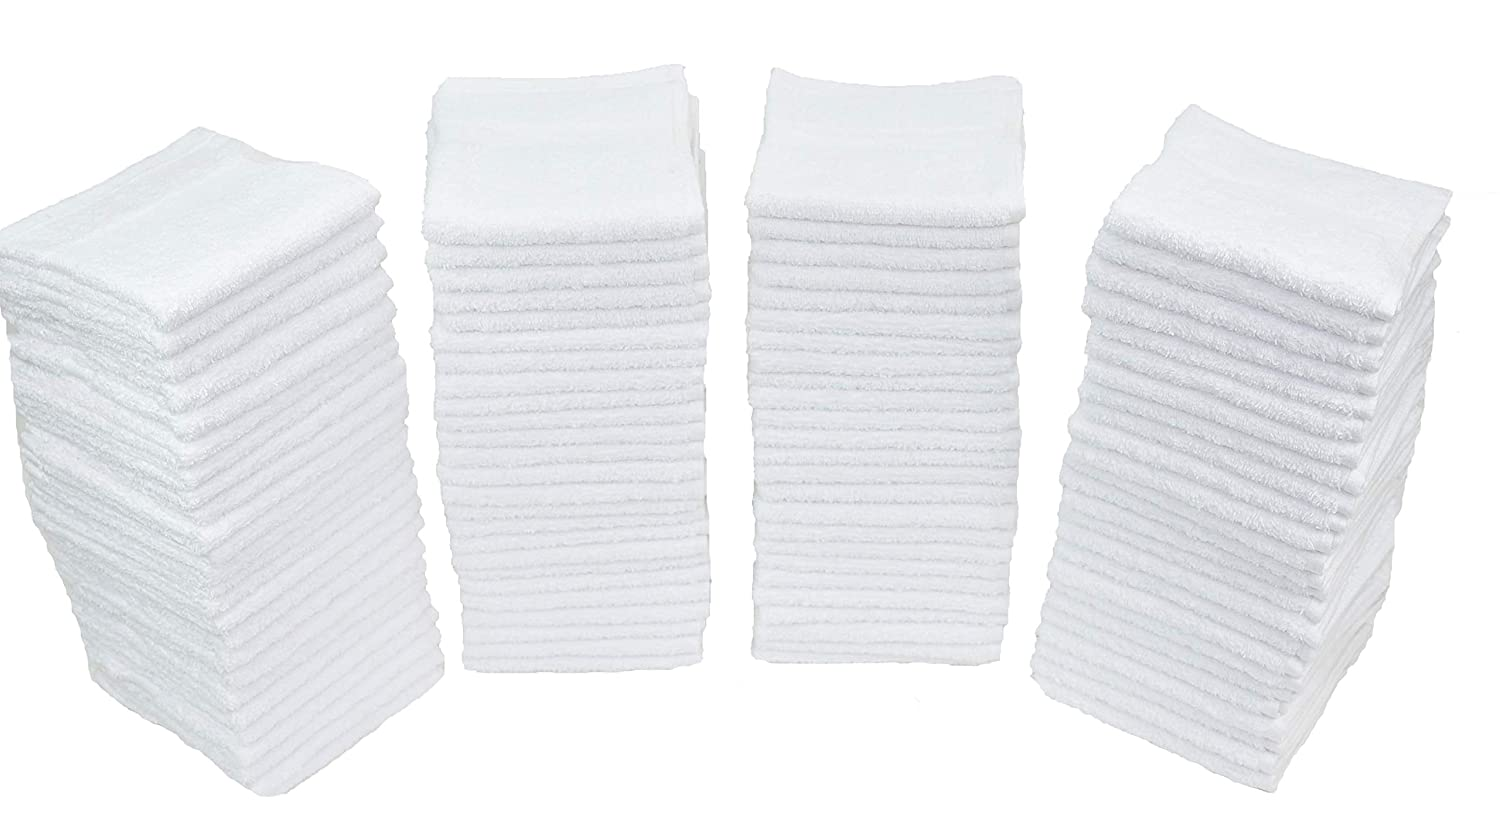 Cleaning Solutions 78992-60PK White Pack of 60 Terry Towels Cleaning Cloths (60 Pack) Ideal for Home, Auto, Salon,Gym, Makeup Removing & Pets International Textile & Apparel Inc.